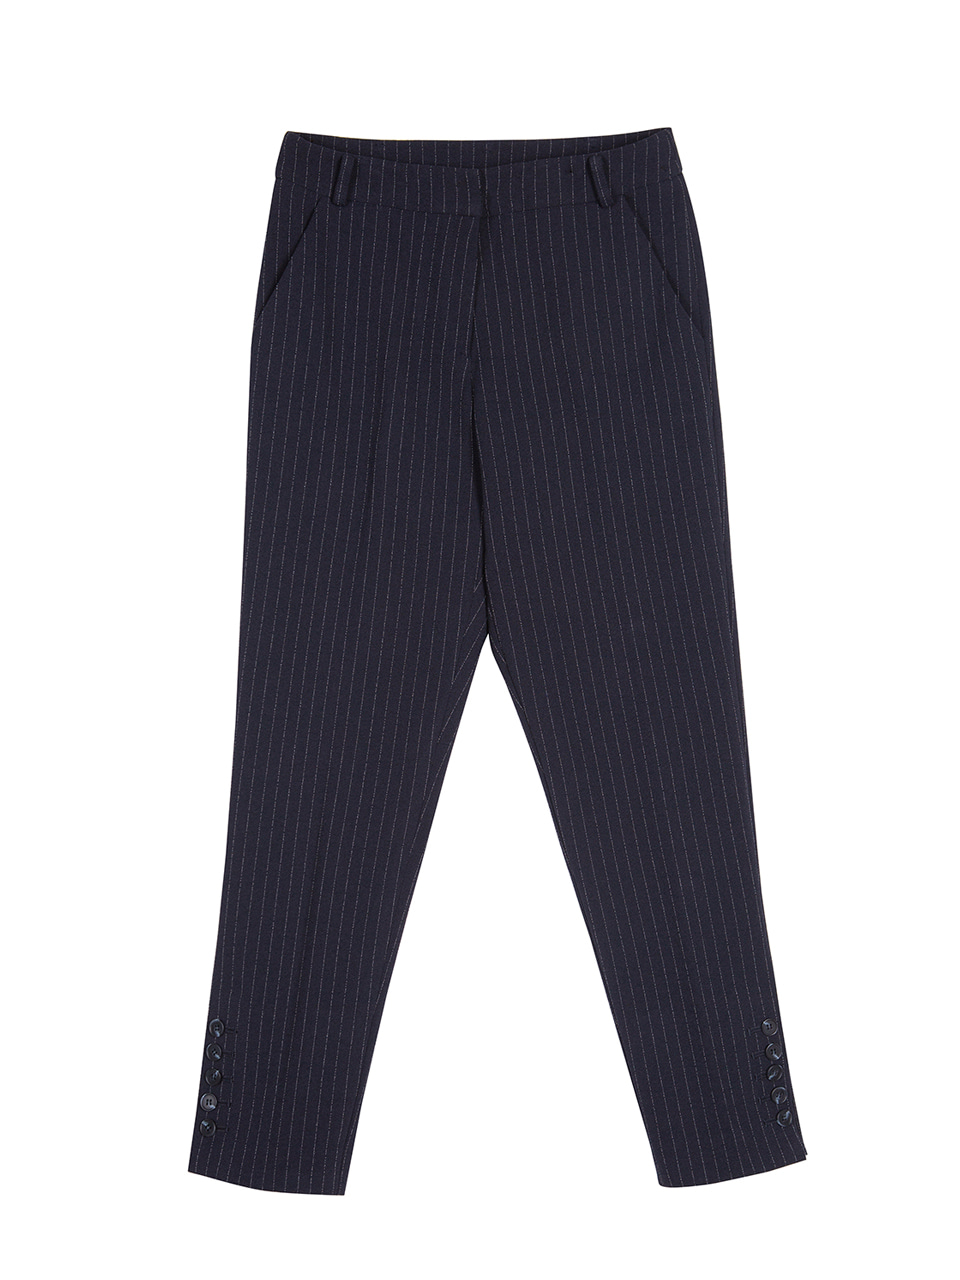 Side Button Pinstriped Pants - dark navy